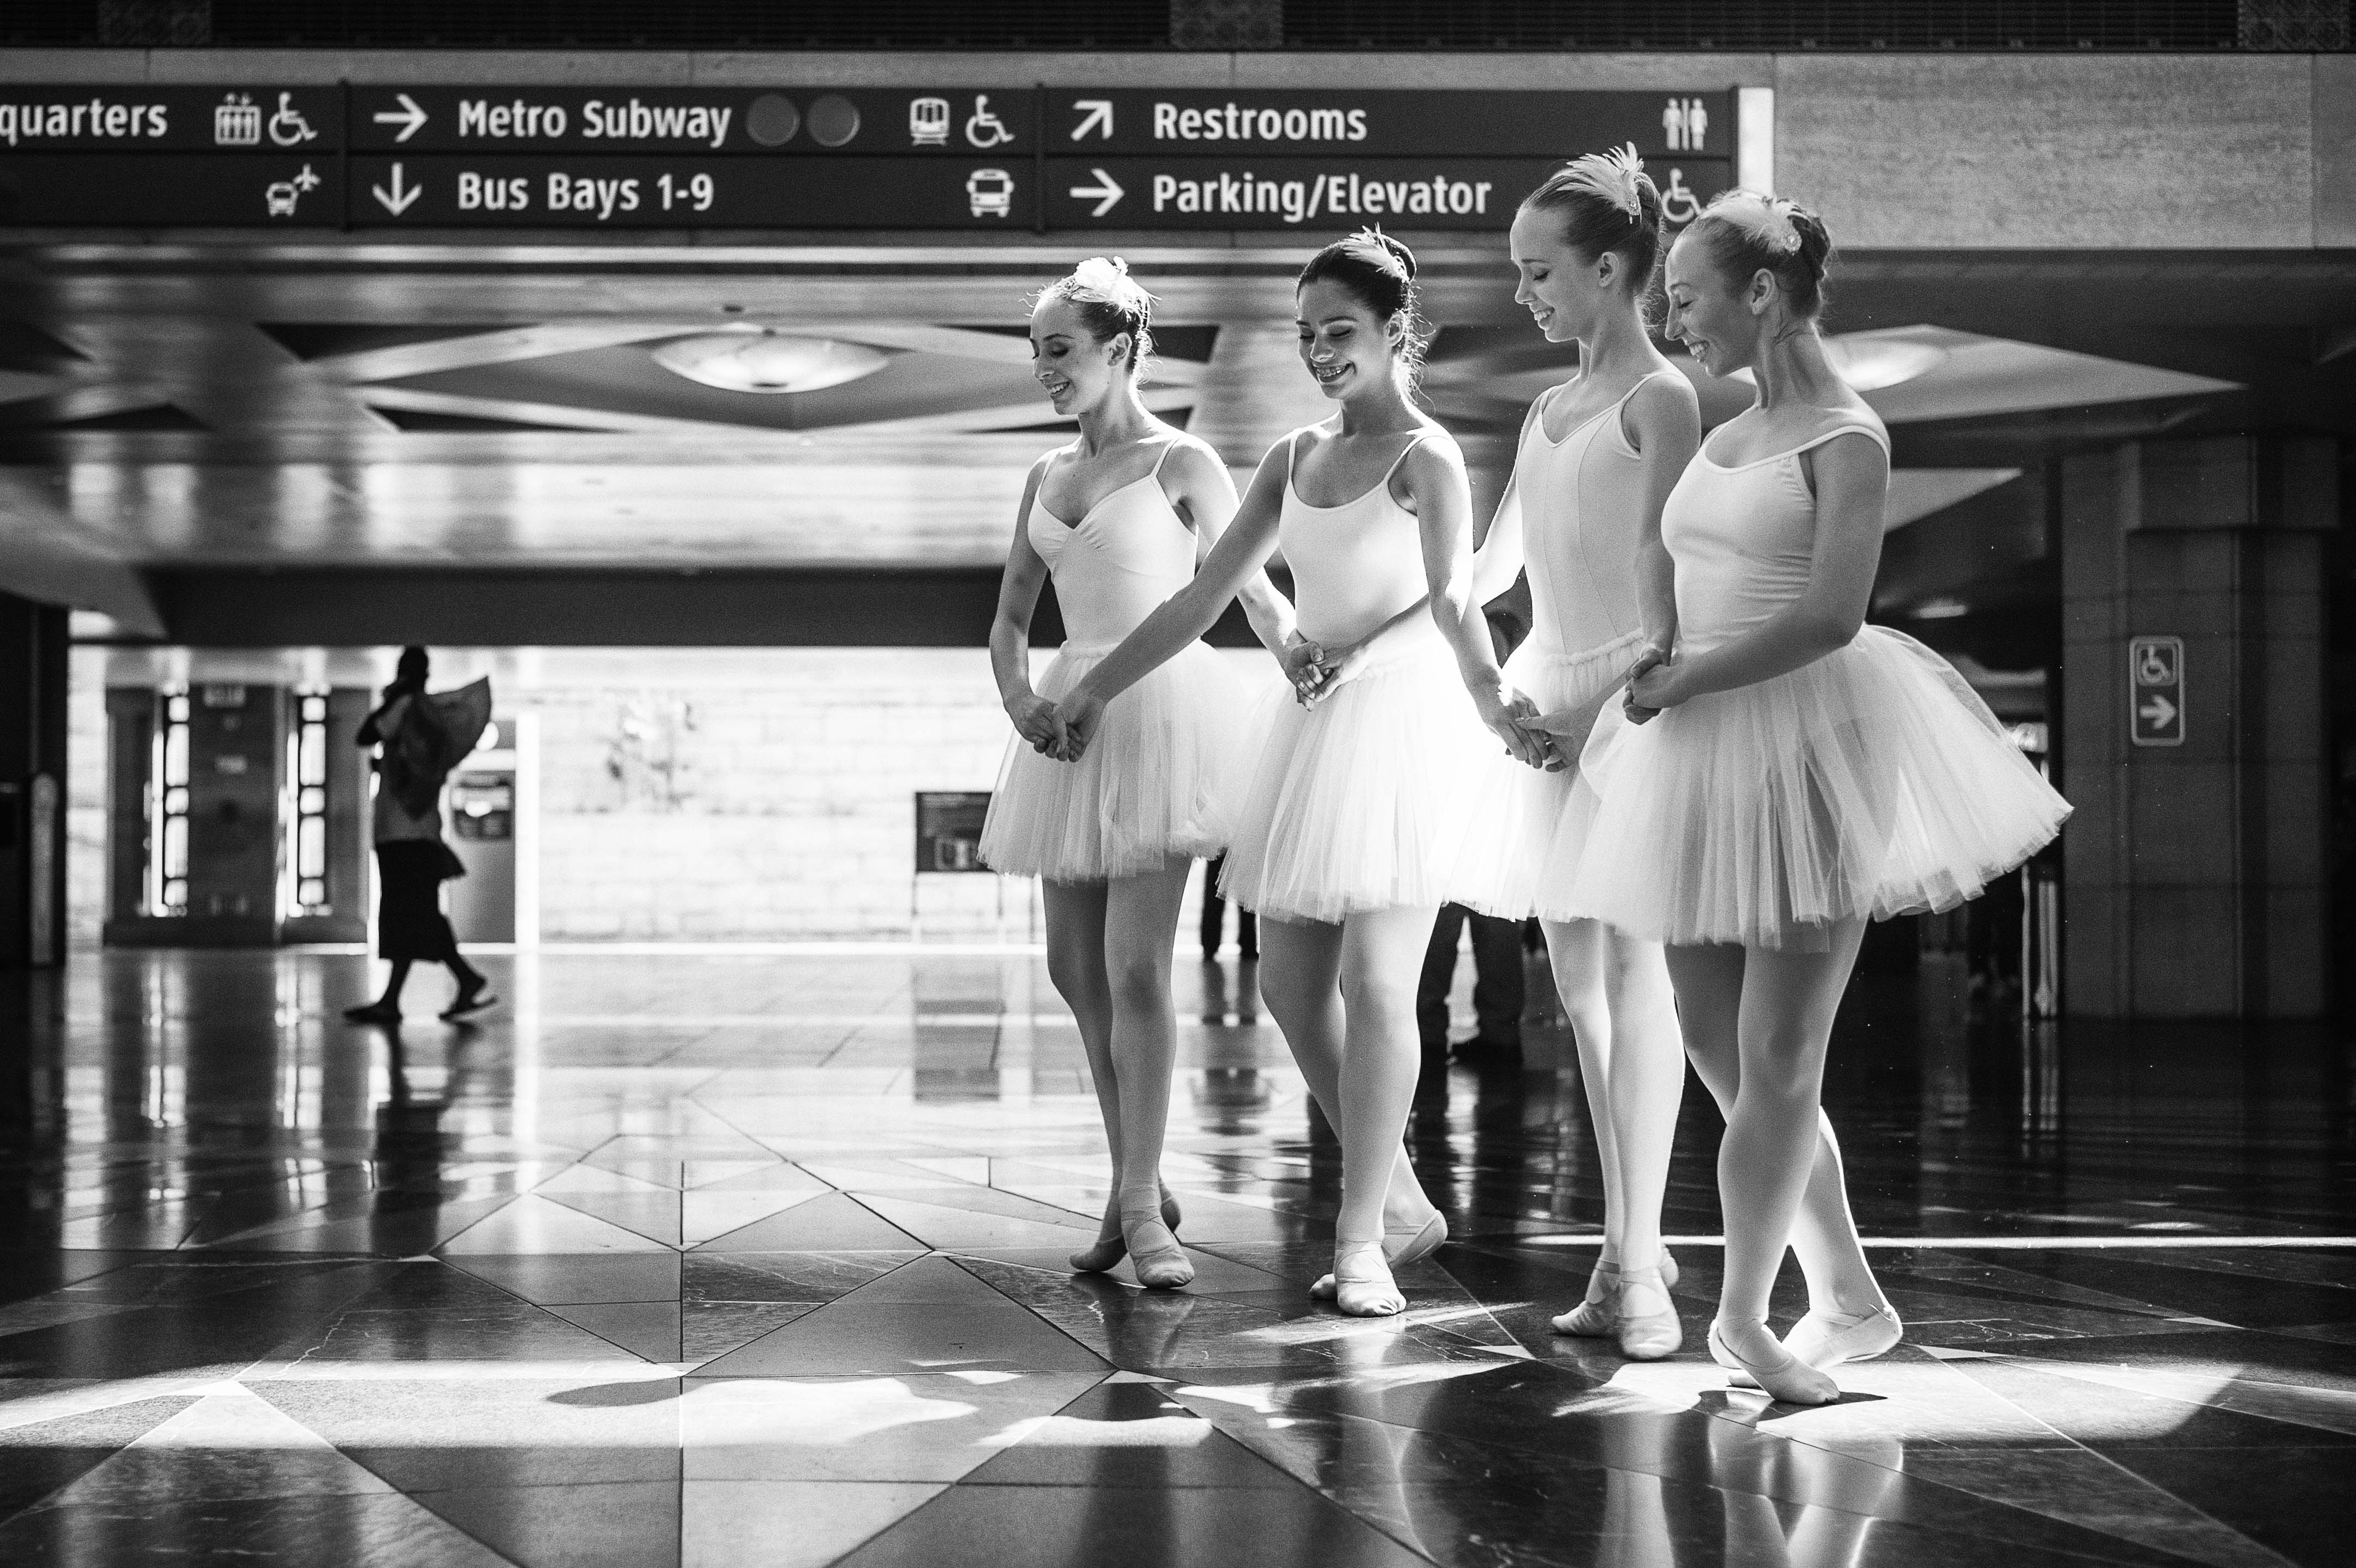 Metro is running a nice promotion with the Music Center -- if you Go Metro with a TAP card, you can save 20 percent on The Australian Ballet's performance of Swan Lake at the Music Center Oct. 9 to 12. As part of the promotion, four members of the XX performed at Union Station last week. The above photo was taken in the East Portal with an assistance from some great light filtered through the glass ceiling. I'll post some more pics soon.  Photo by Steve Hymon/Metro.